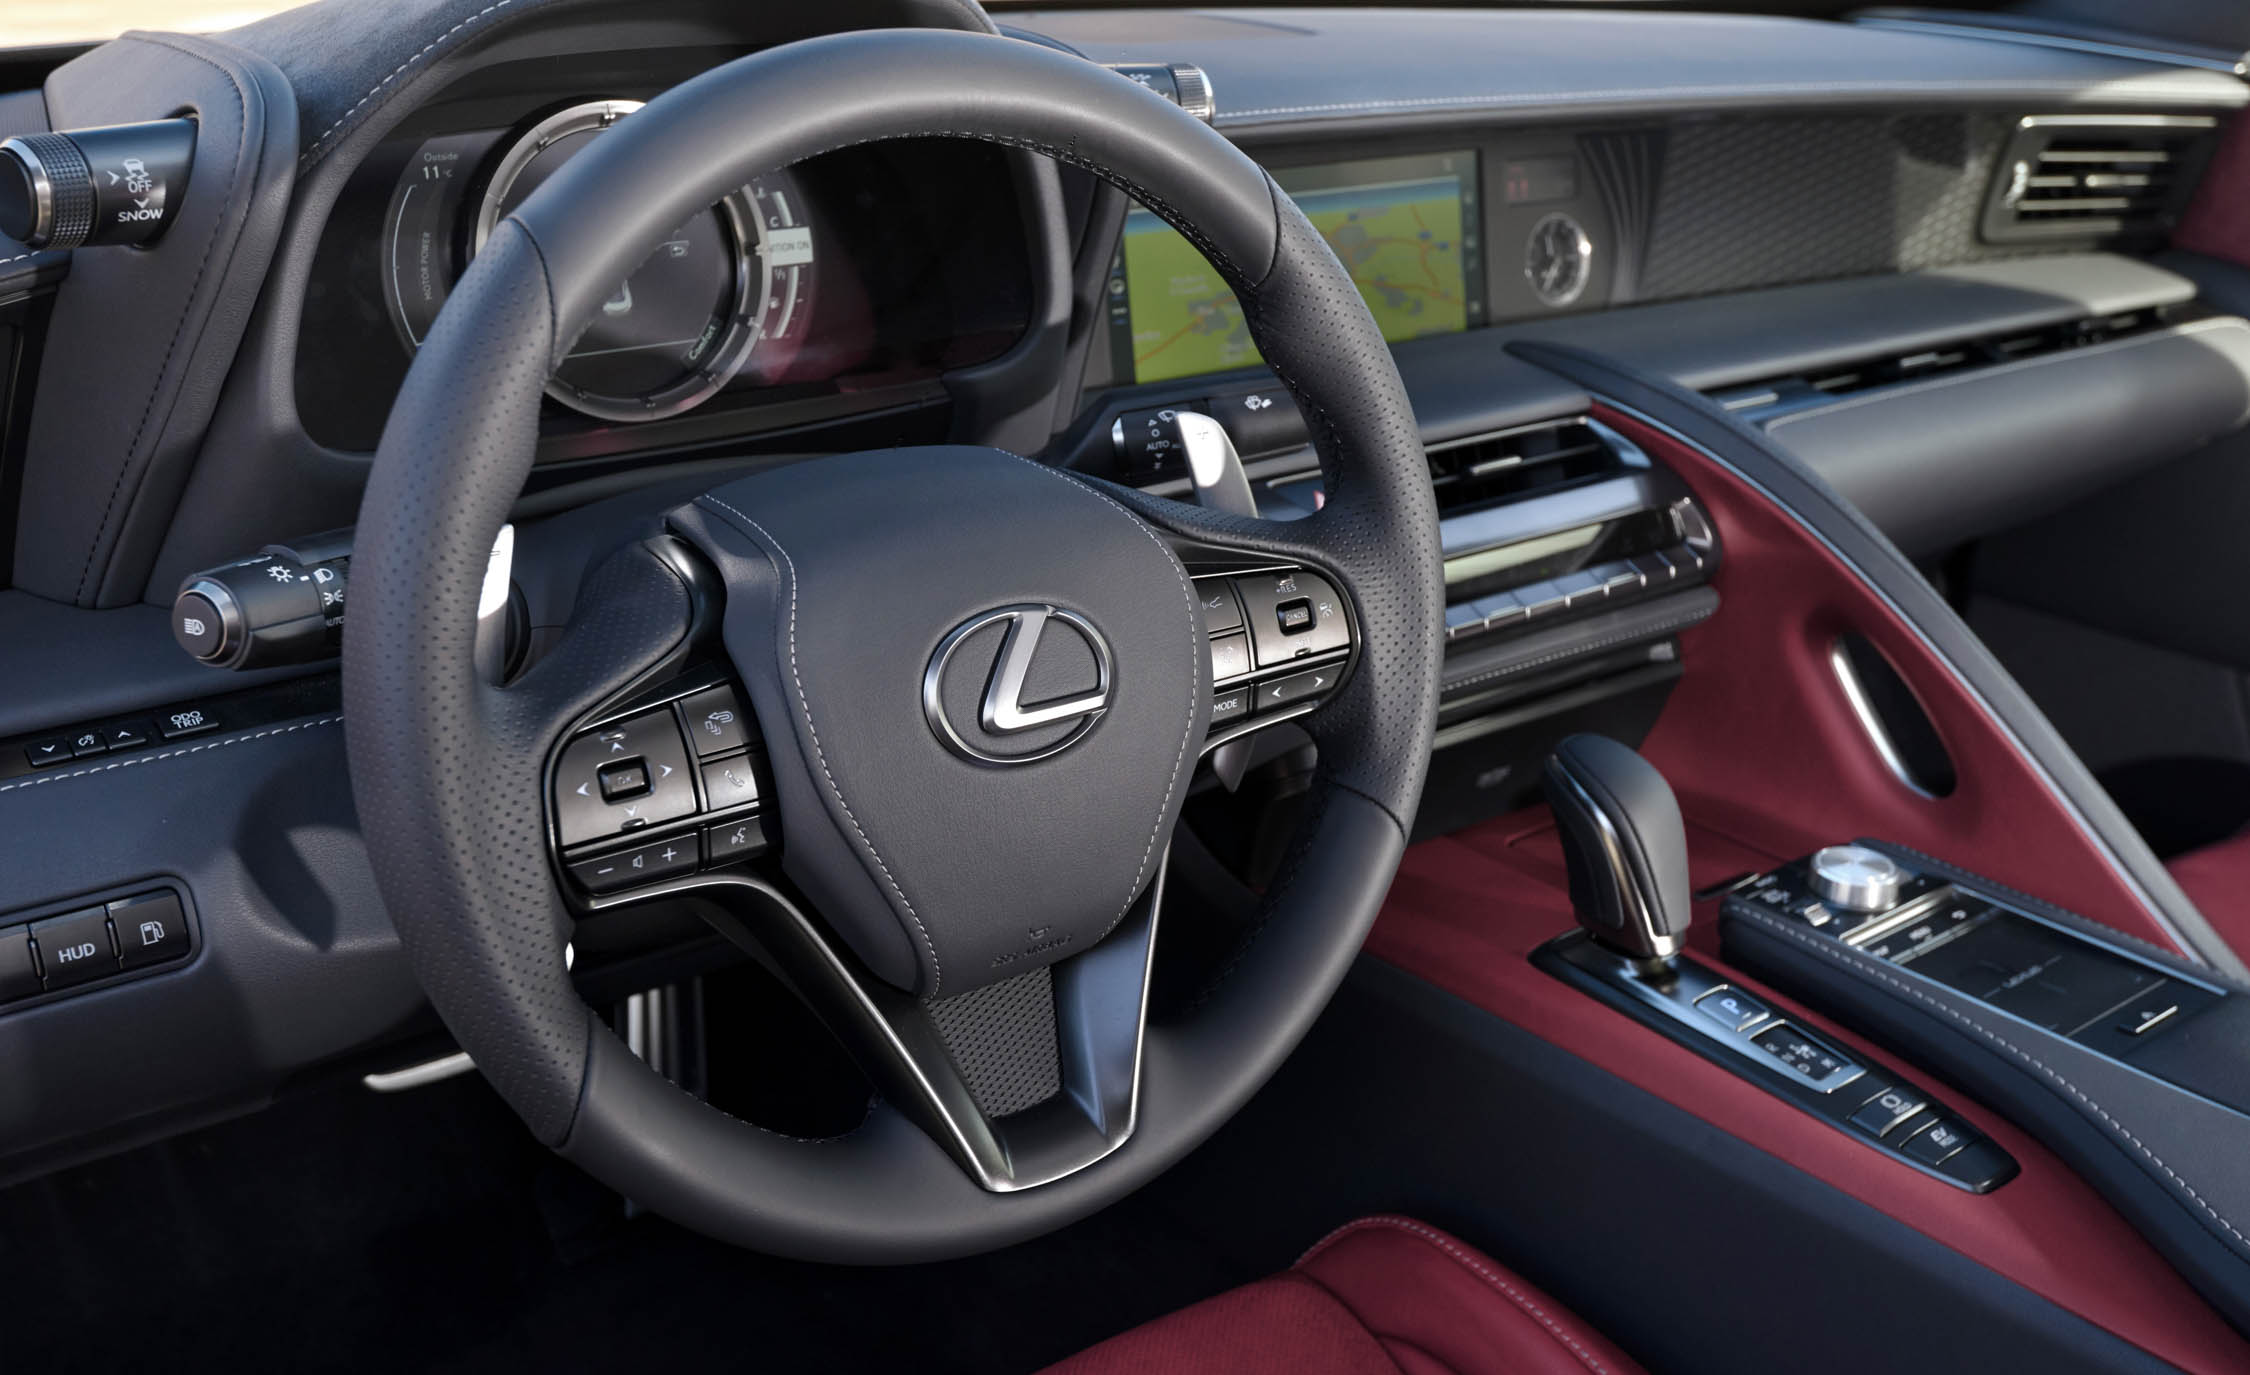 2018 Lexus Lc 500h Interior View Steering Wheel (Photo 56 of 84)